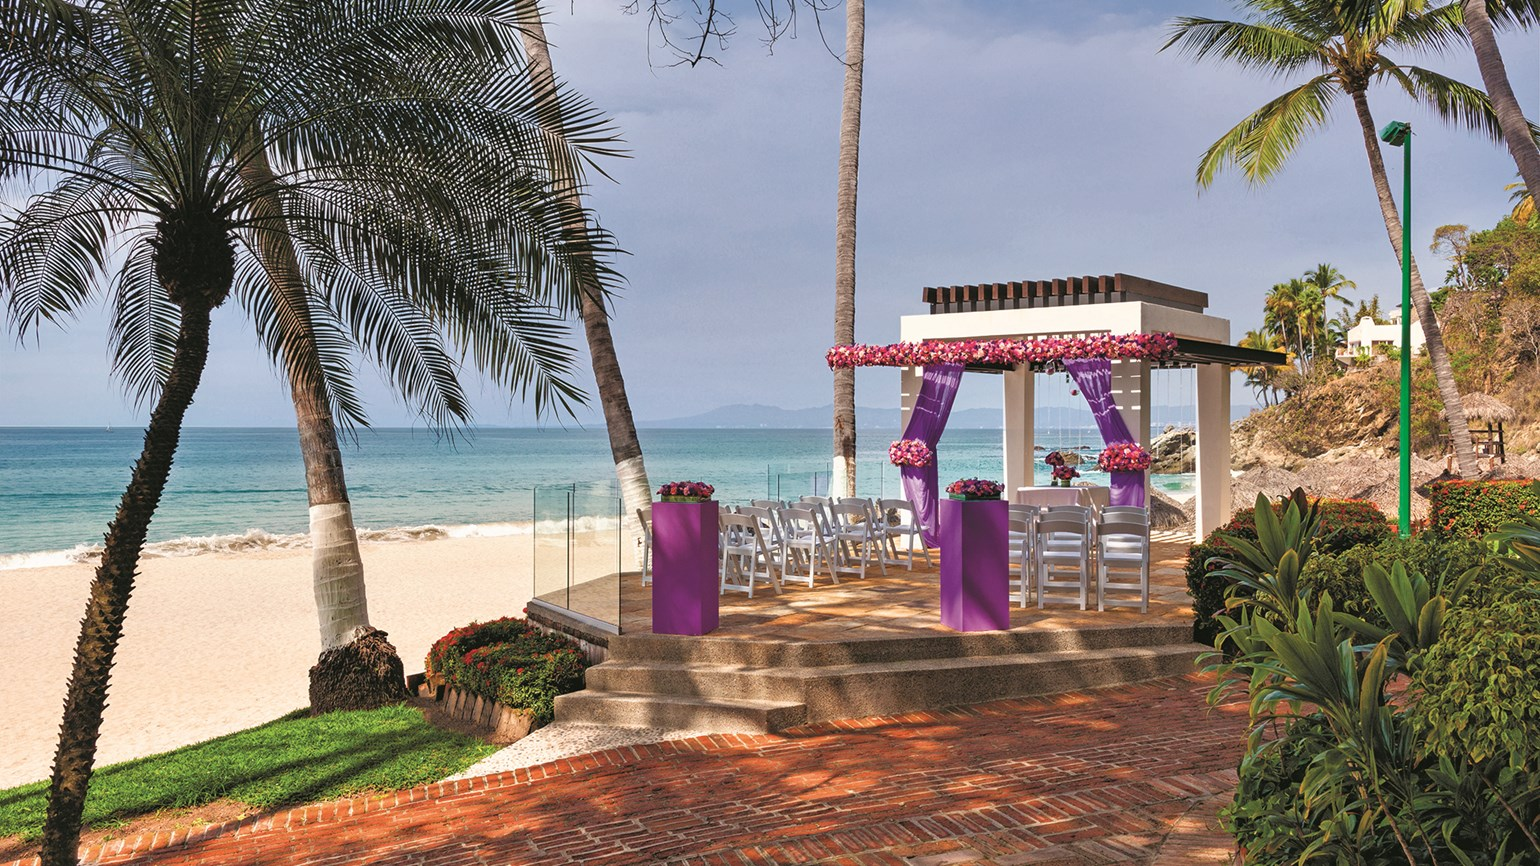 Hotel targeting destination weddings market